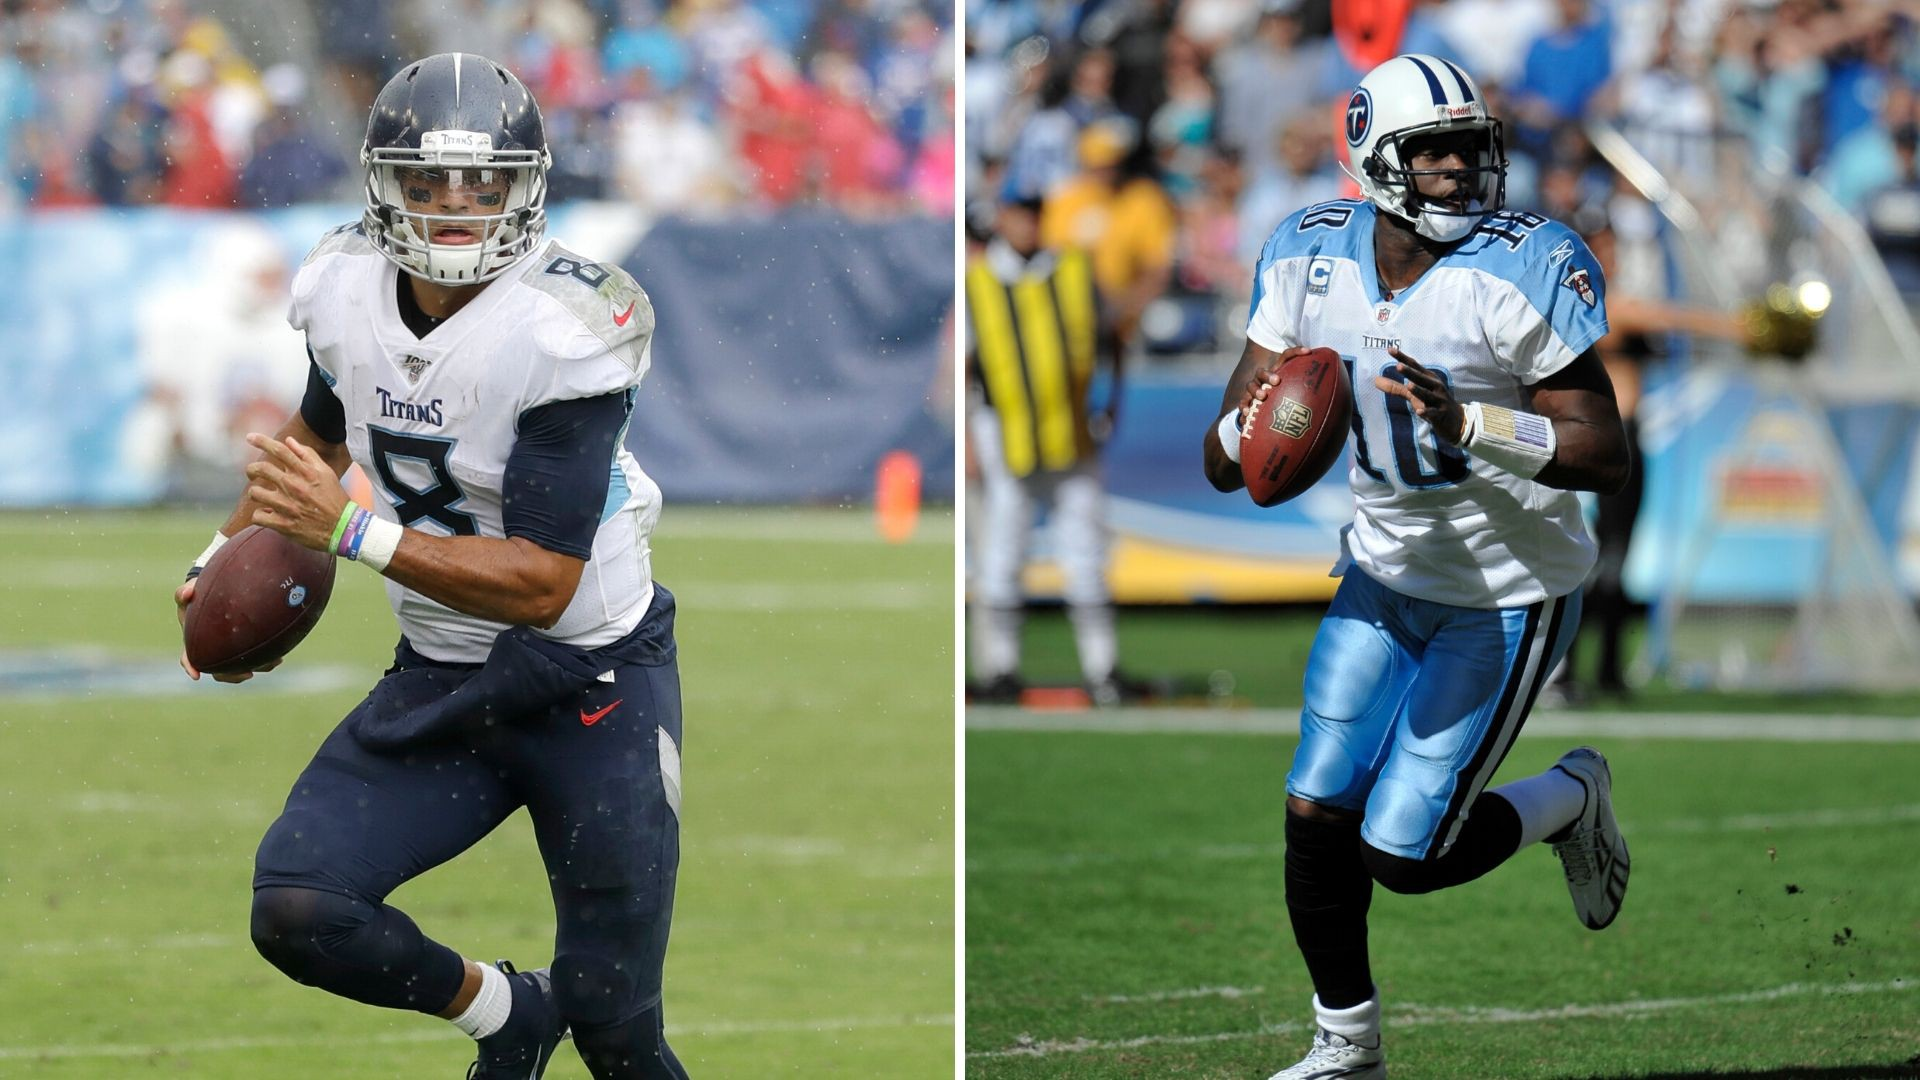 Marcus Mariota and Vince Young